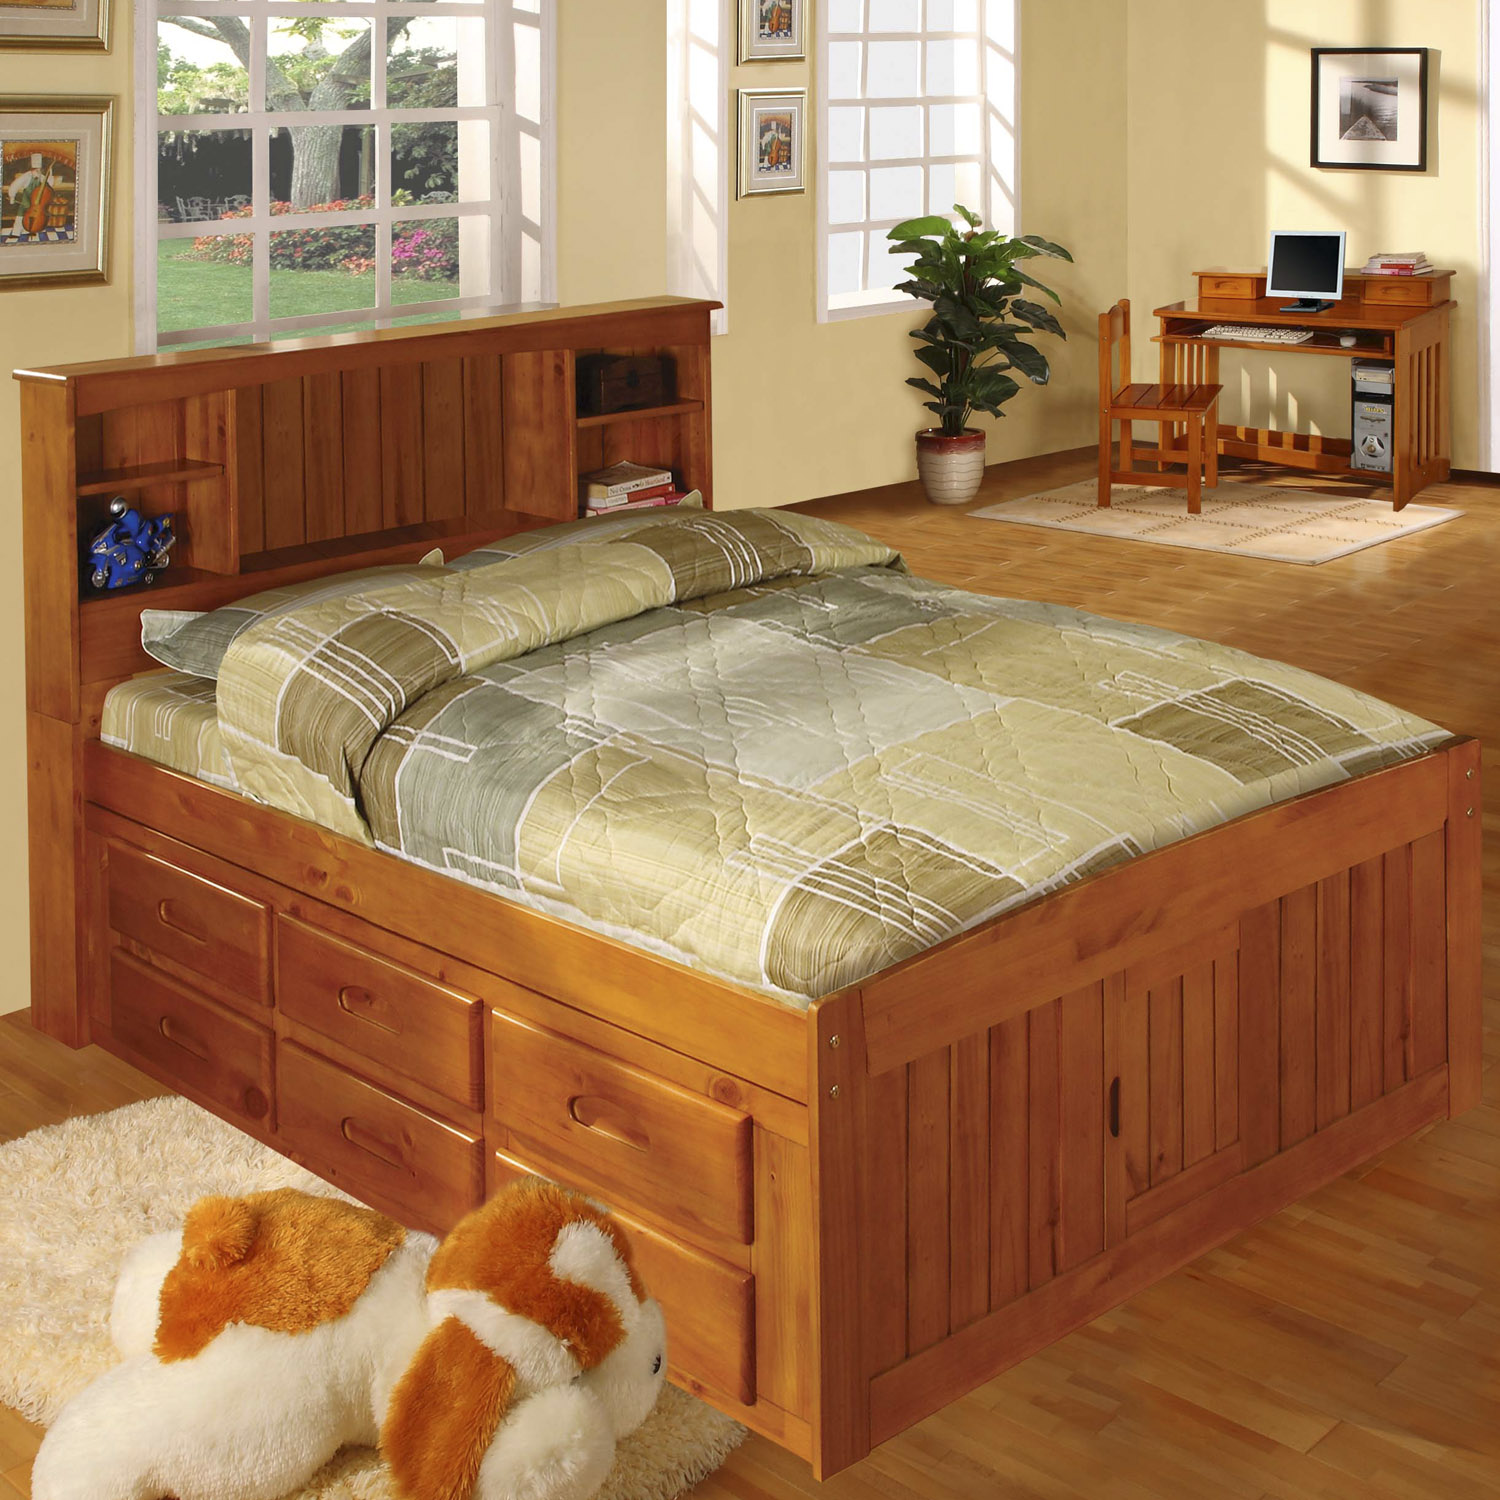 American Furniture Classics Model 2121 12 Bch Solid Pine Bookcase Headboard Full Captains Bed With 12 Underbed Drawers In Honey Walmart Com